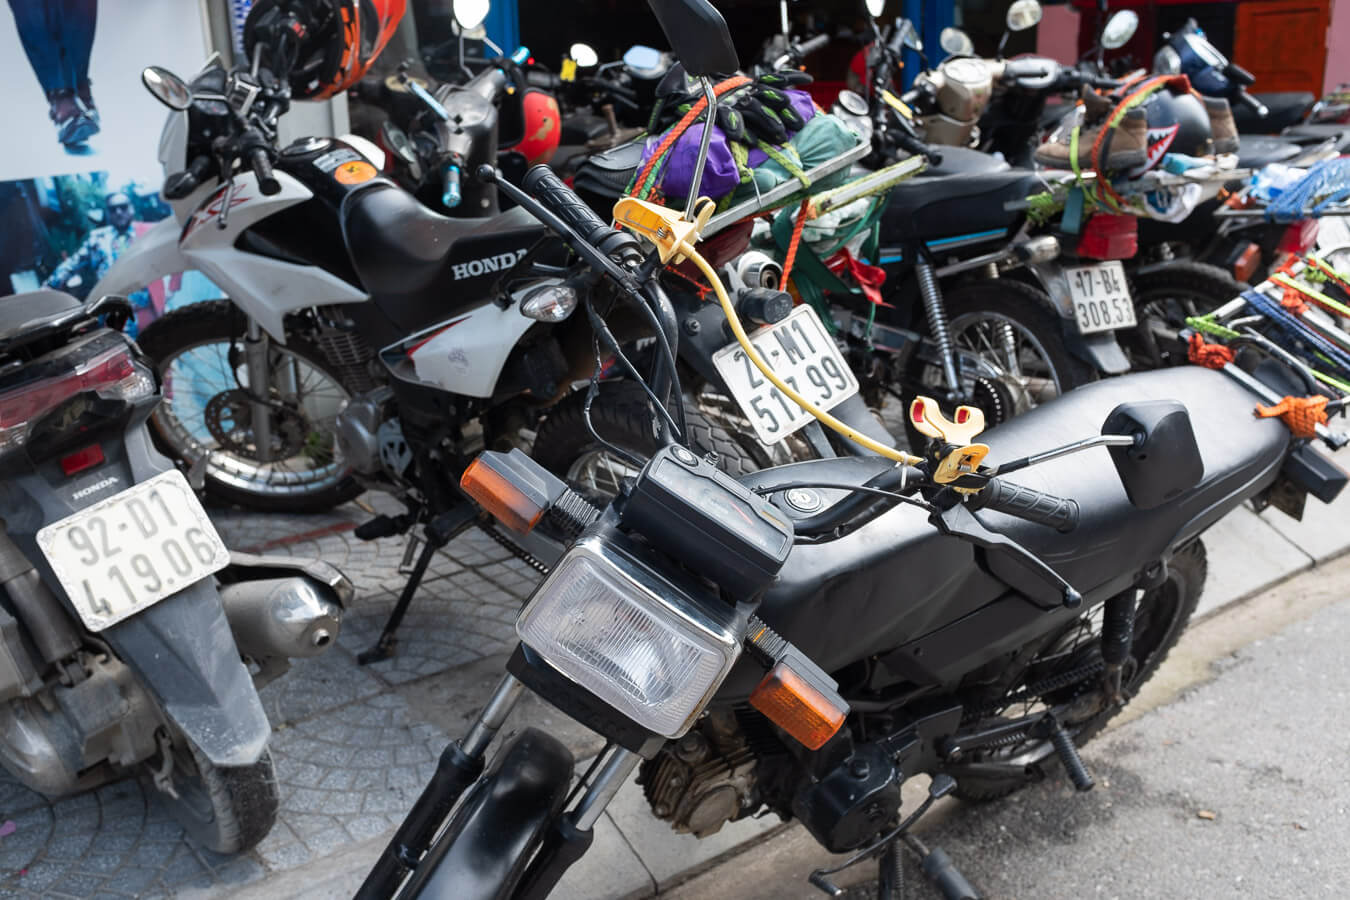 Types of motorbikes: Vietnam motorbike rental